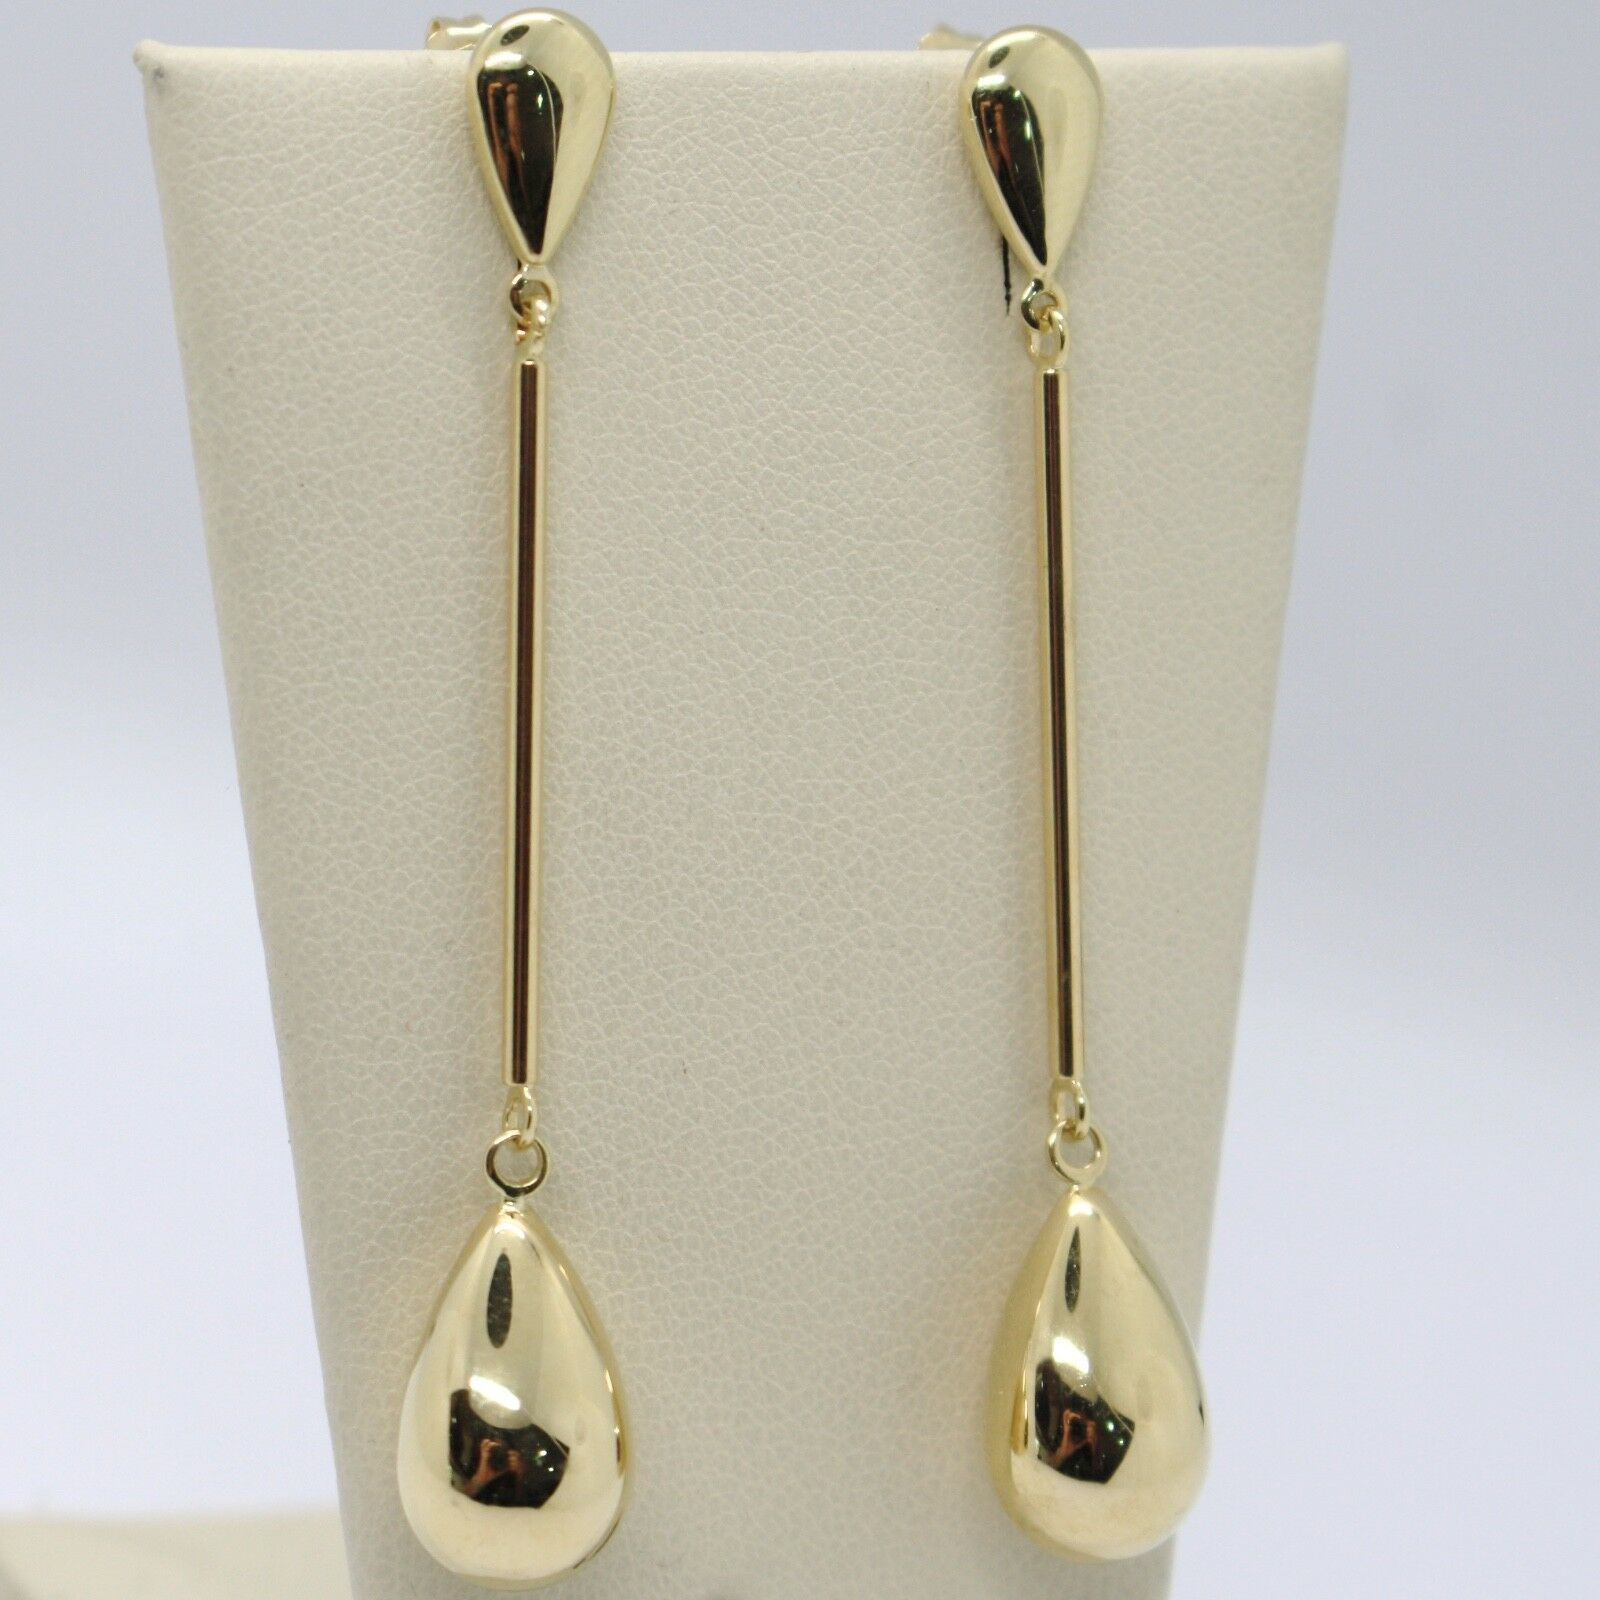 18K YELLOW GOLD PENDANT EARRINGS, TUBE AND BIG DROP, 2.4 INCHES, MADE IN ITALY